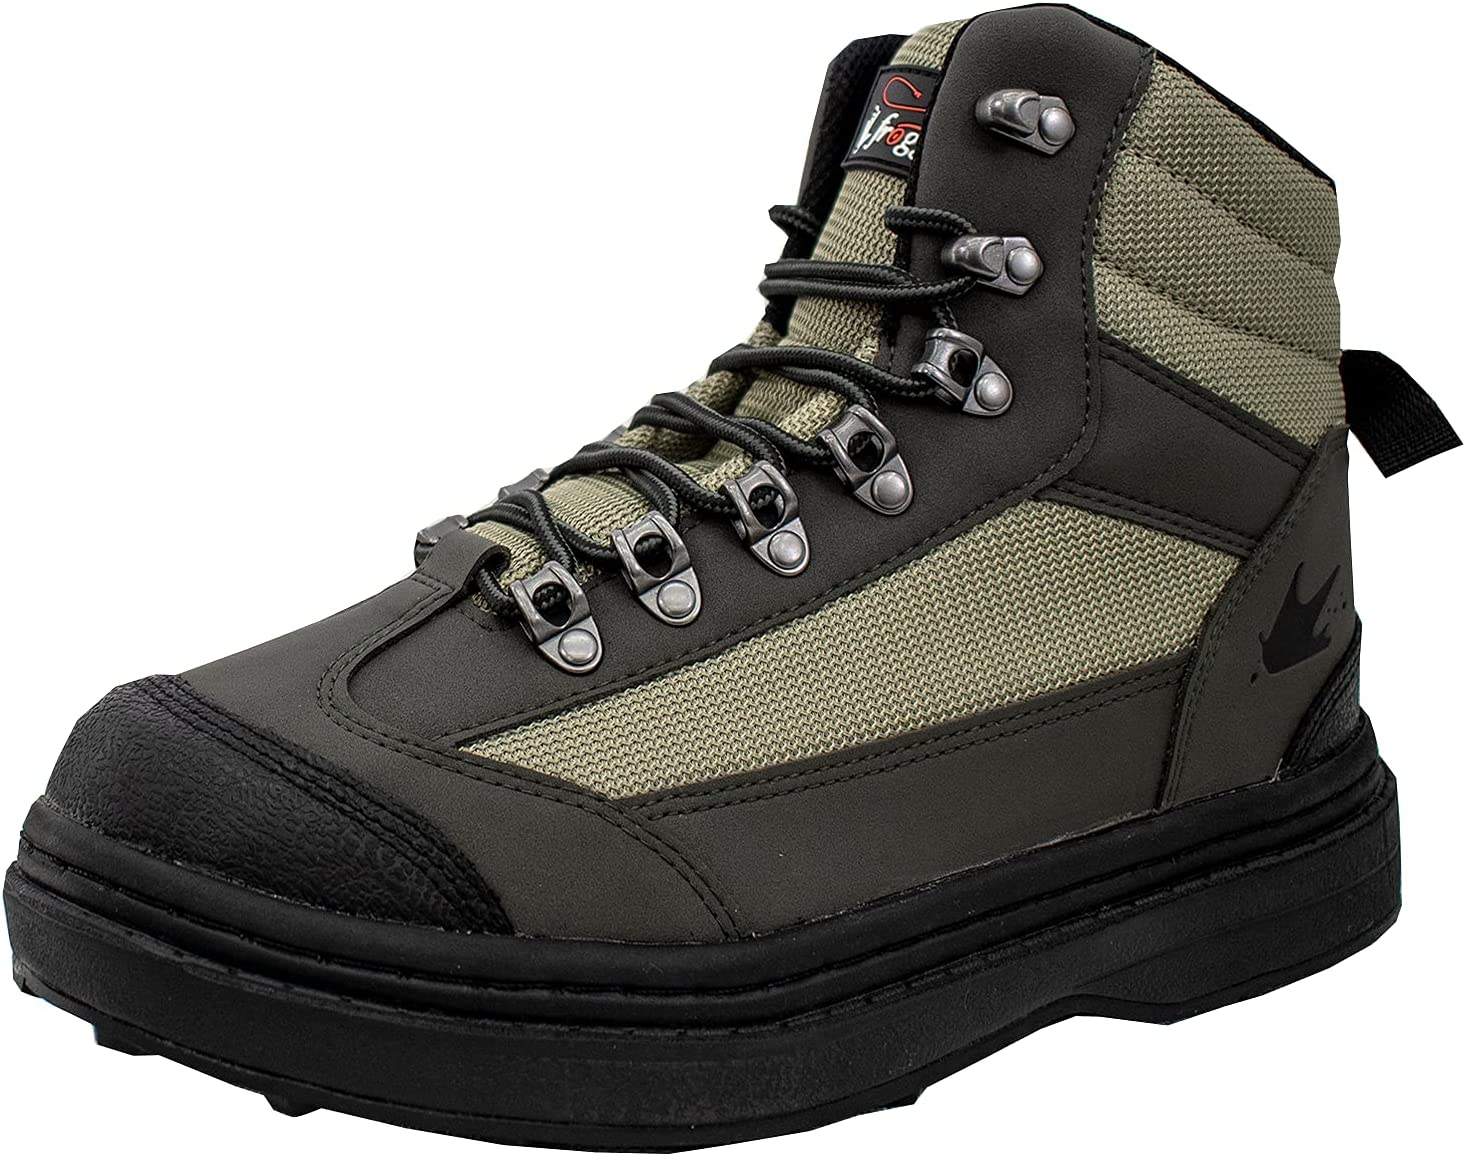 FROGG TOGGS Men's Hellbender Fishing Wading Boot, Cleated Outsole : Clothing